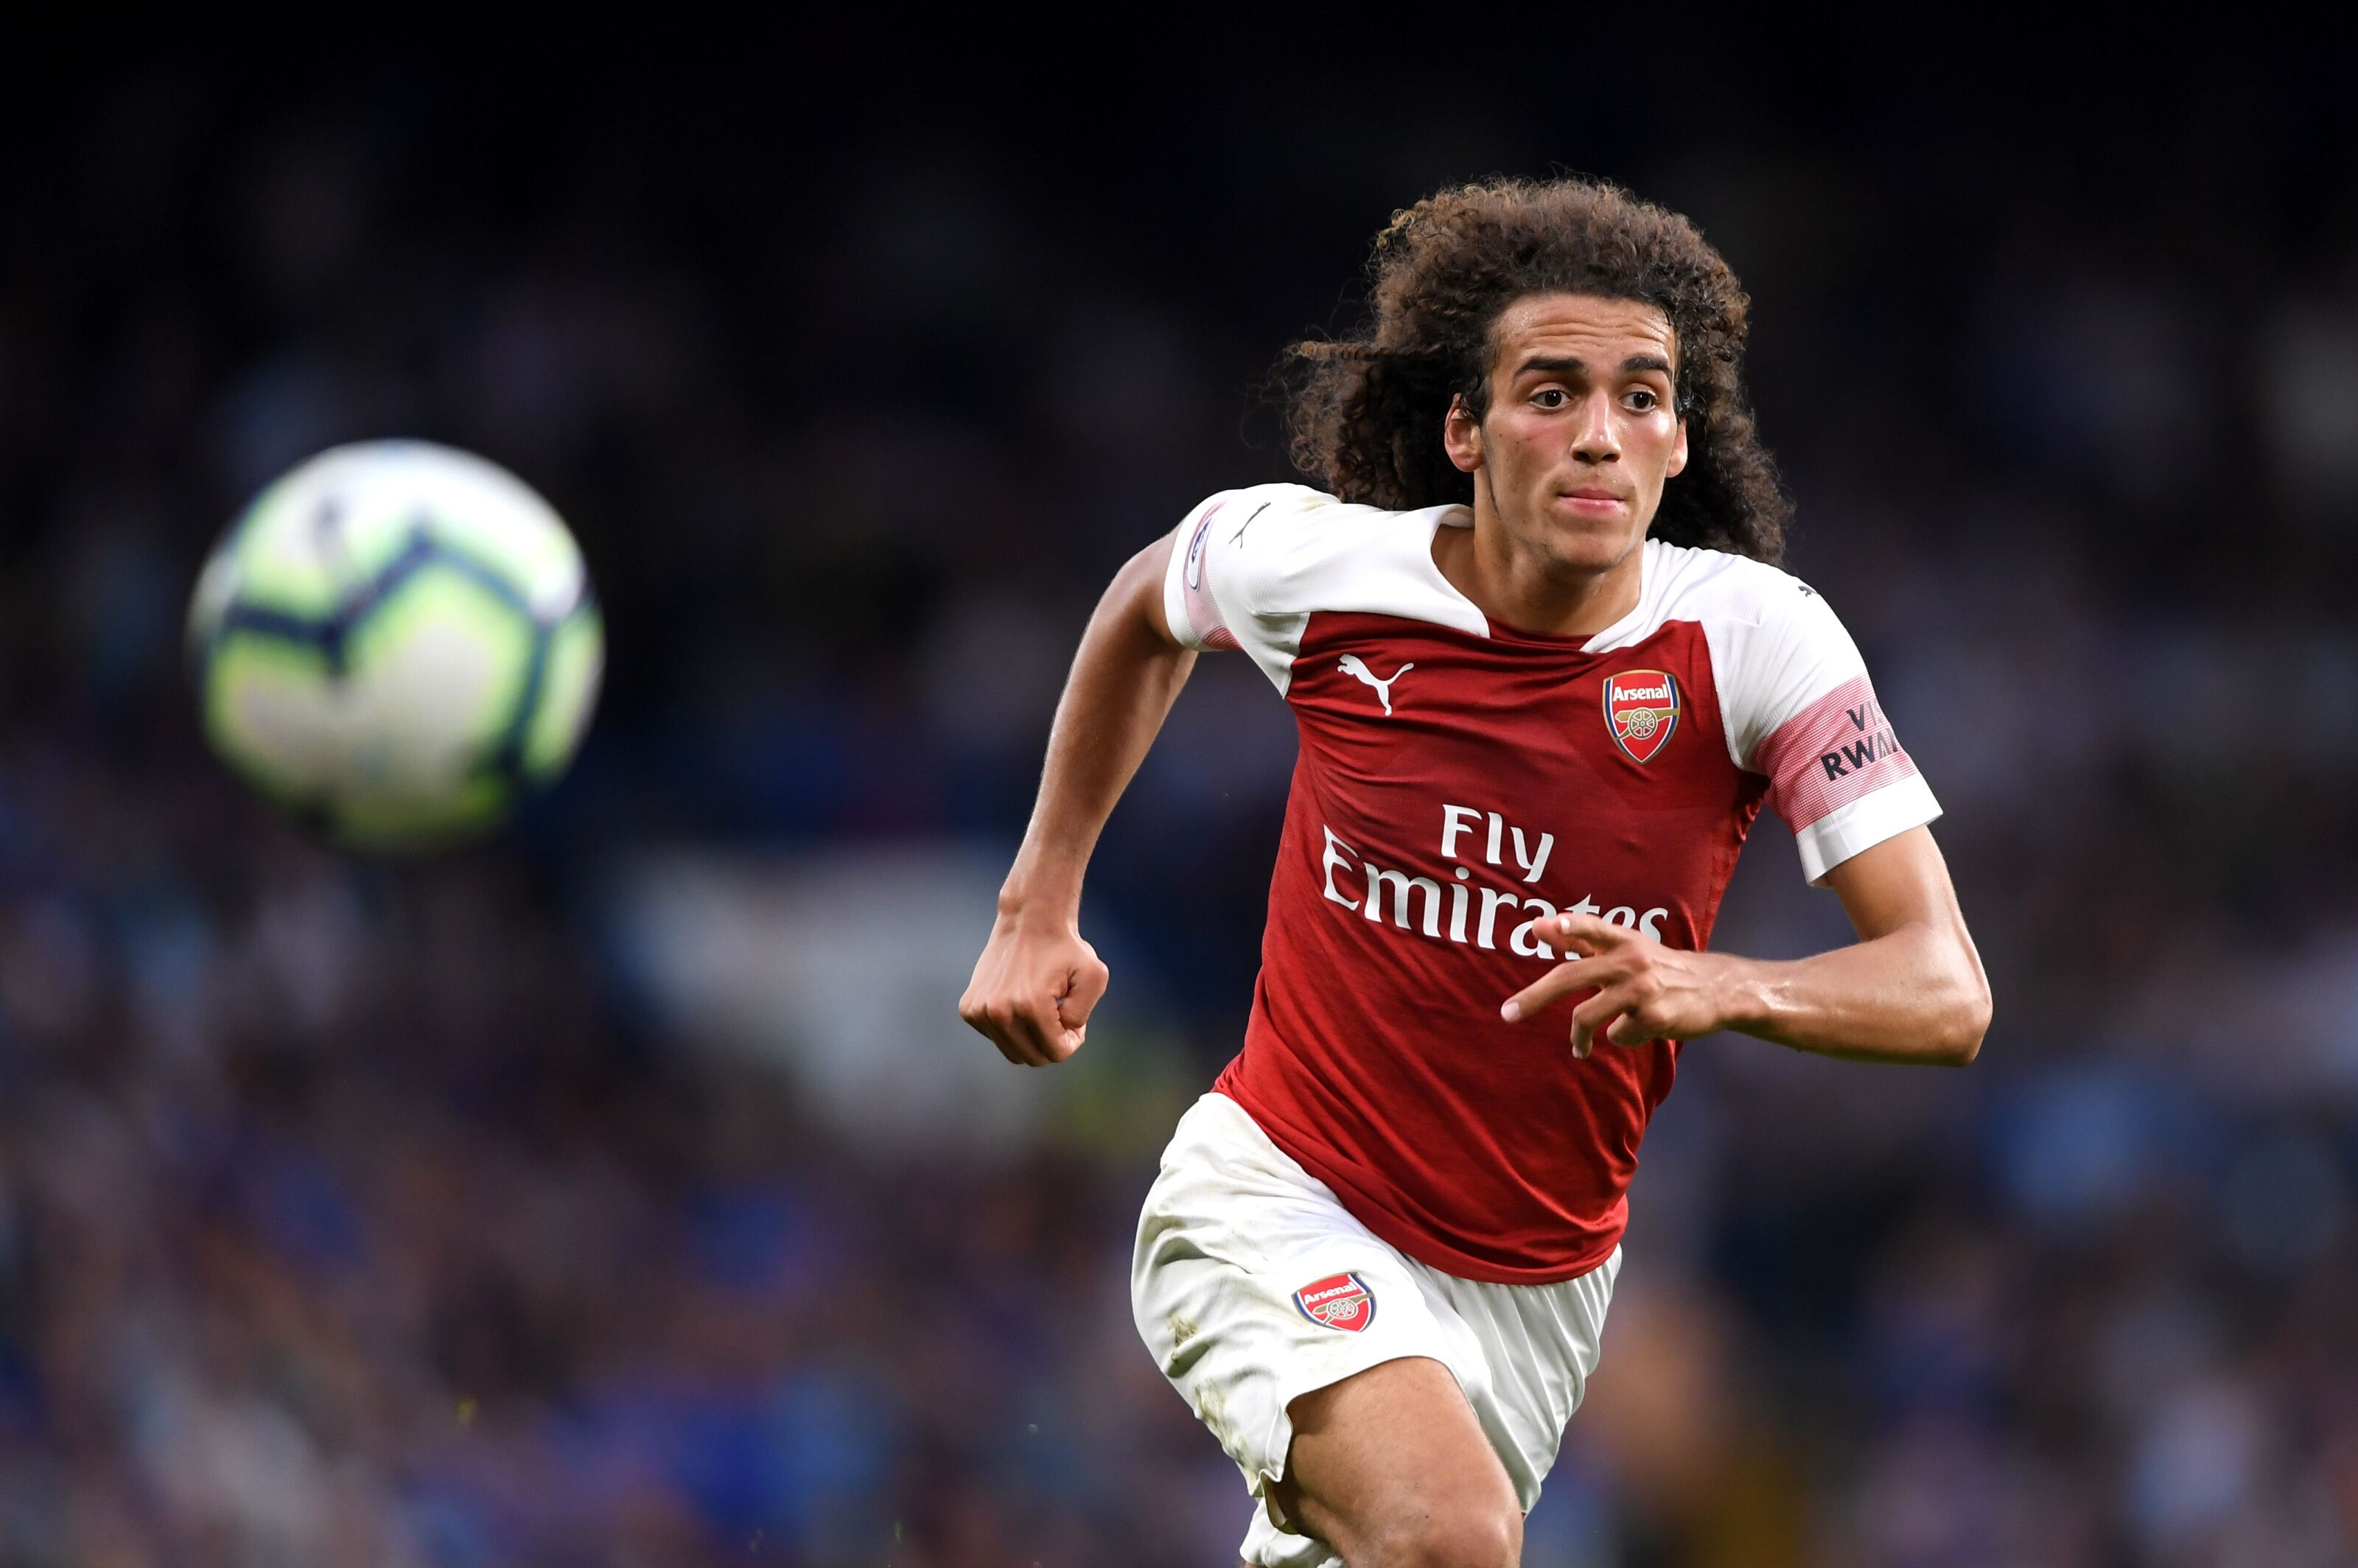 Arsenal: Matteo Guendouzi Must Find His Strengths